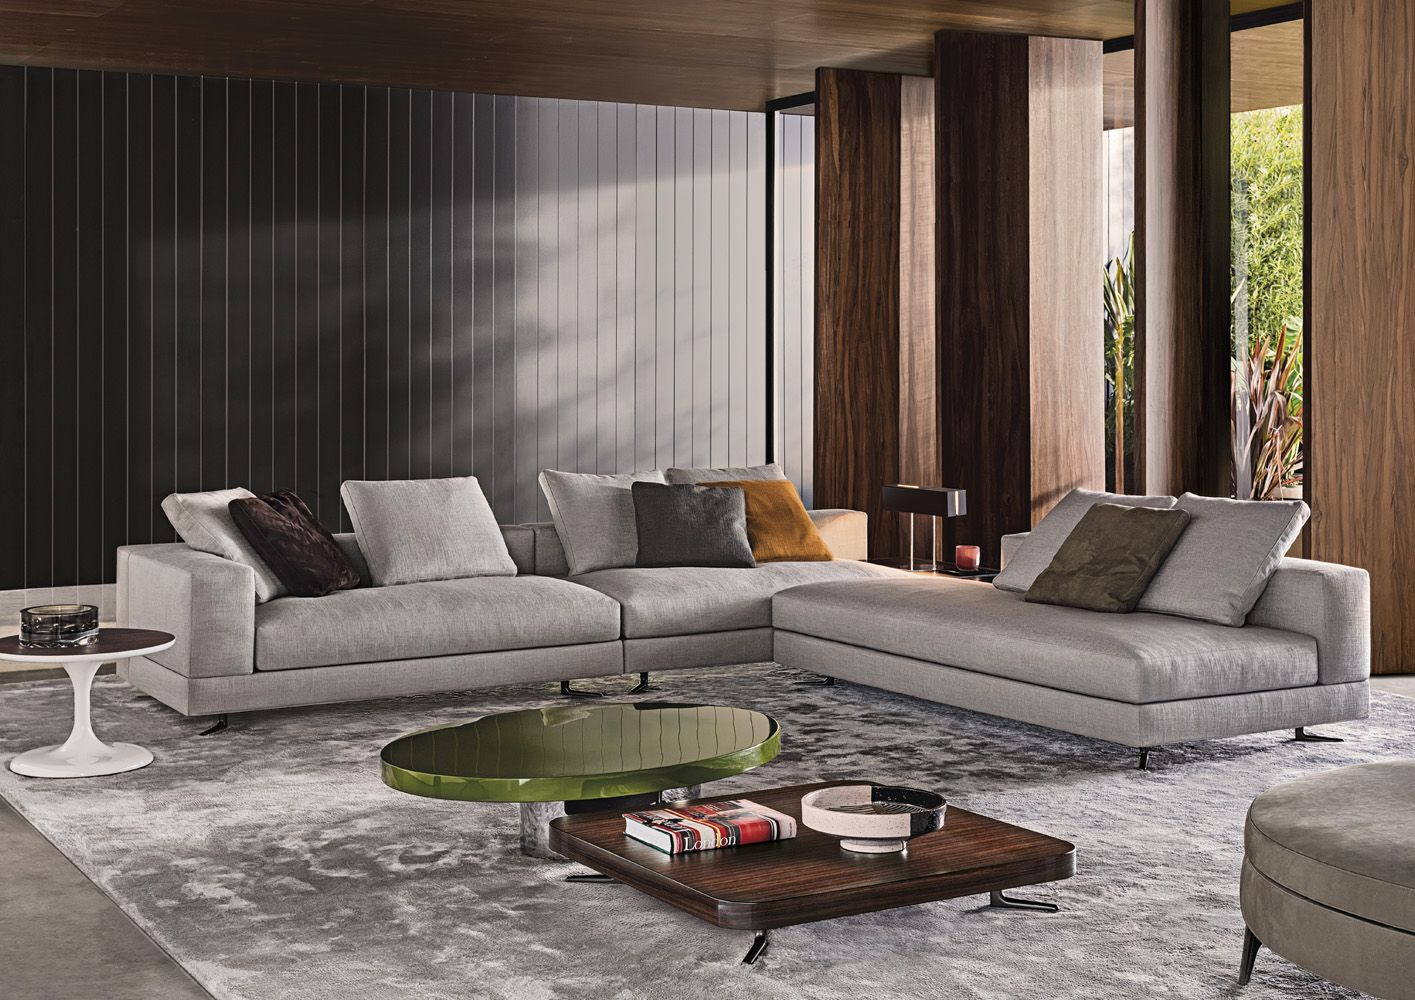 New sofa by Minotti now in store at Van der Donk interieur. More ...